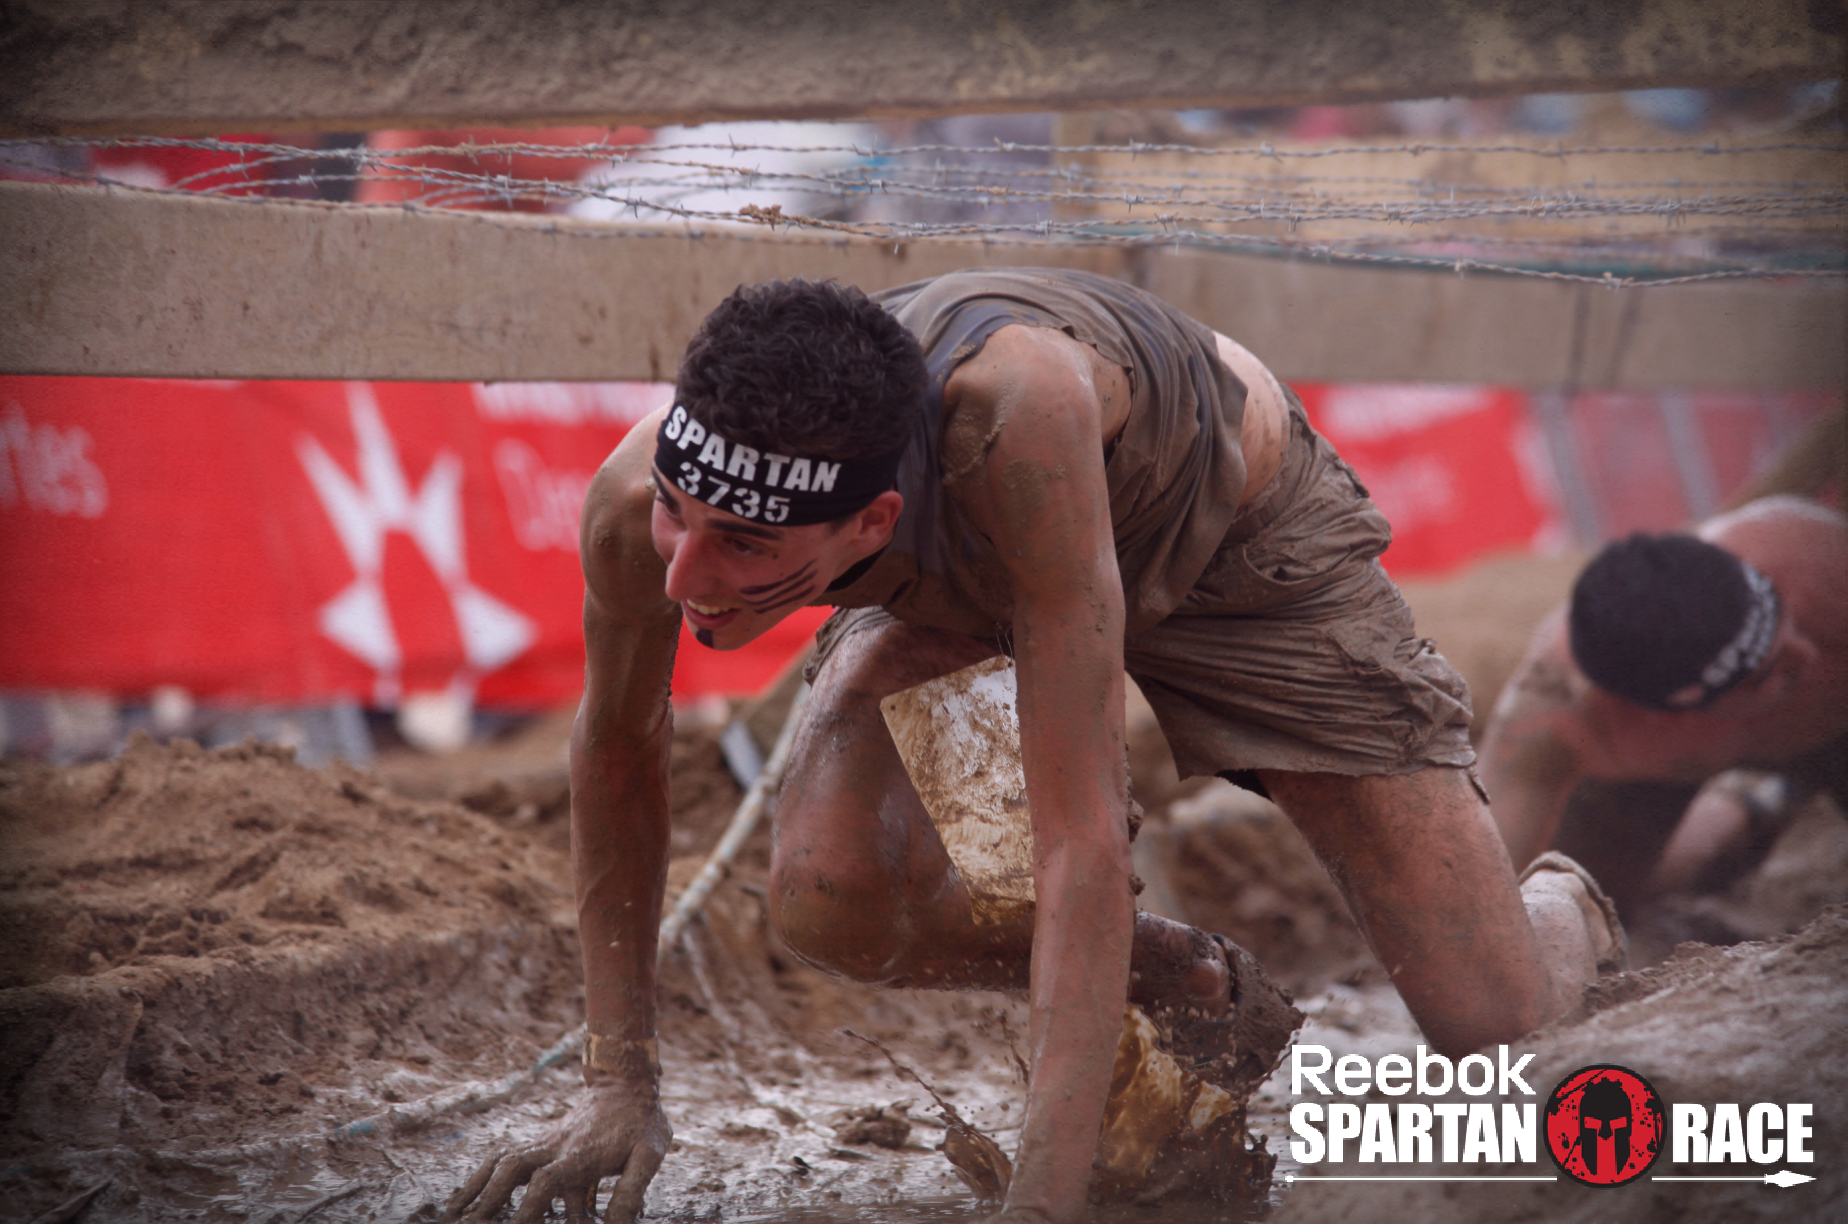 Madrid Spartan Race'14